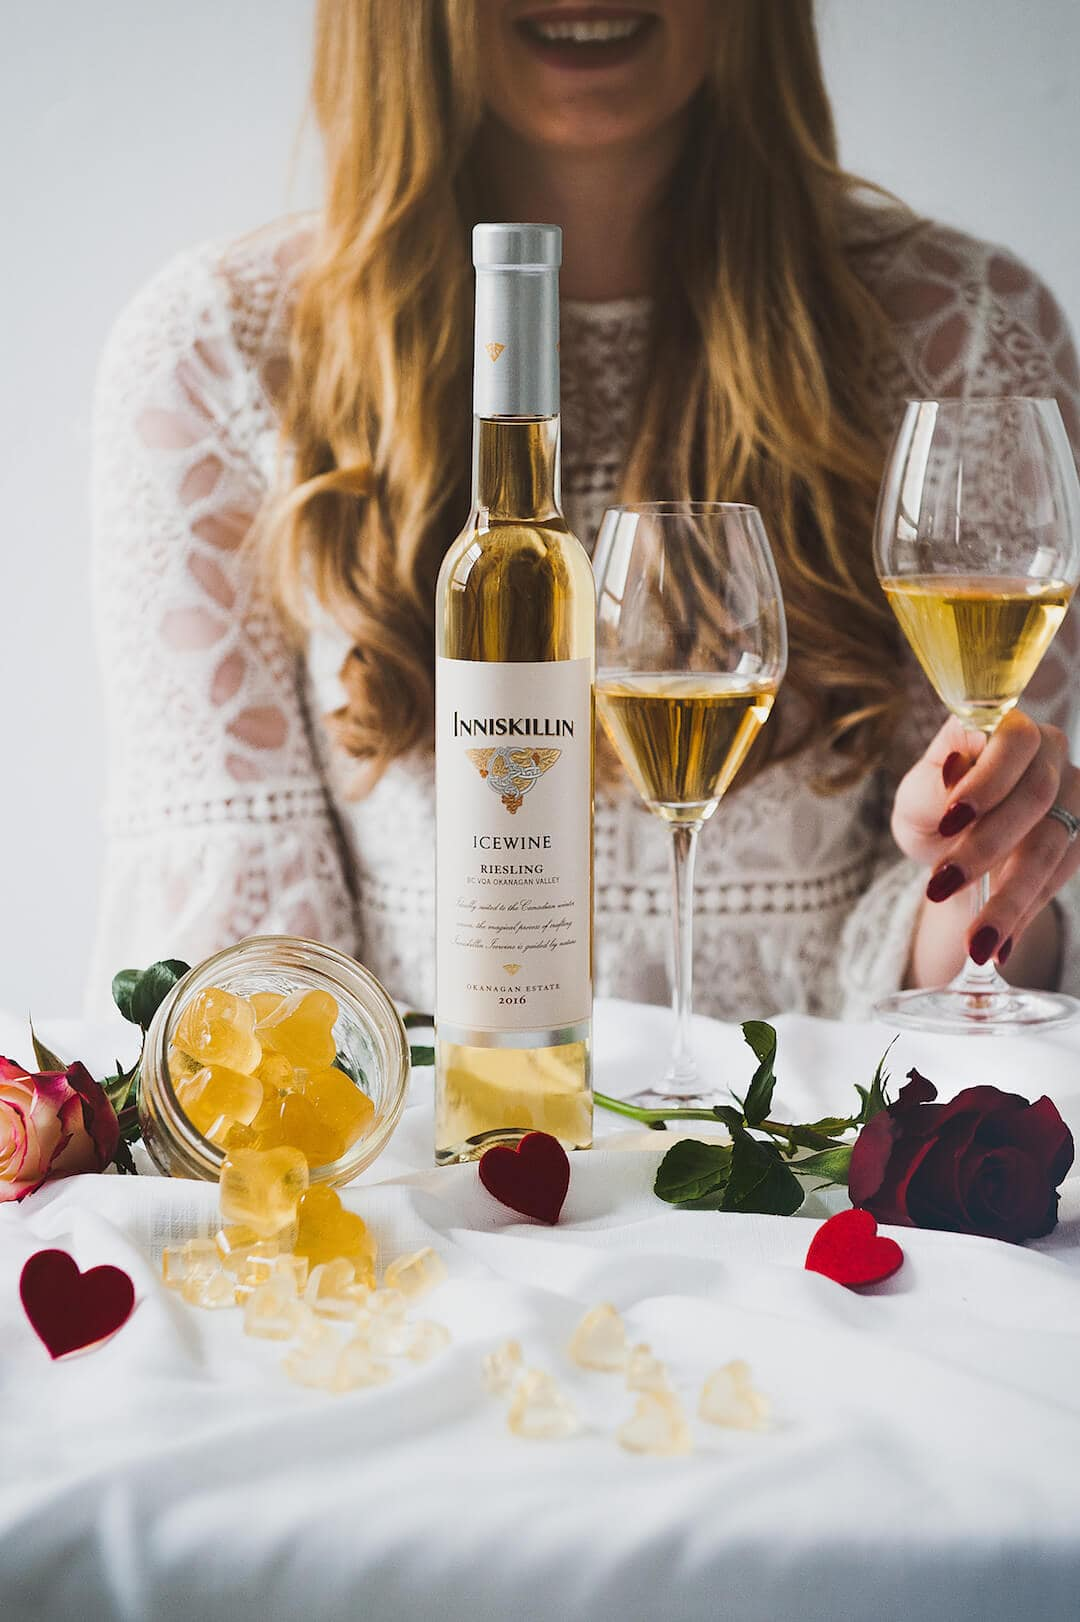 Something Sweet for Your Sweetheart | Valentines Day Recipe by popular Vancouver blogger The Urban Umbrella